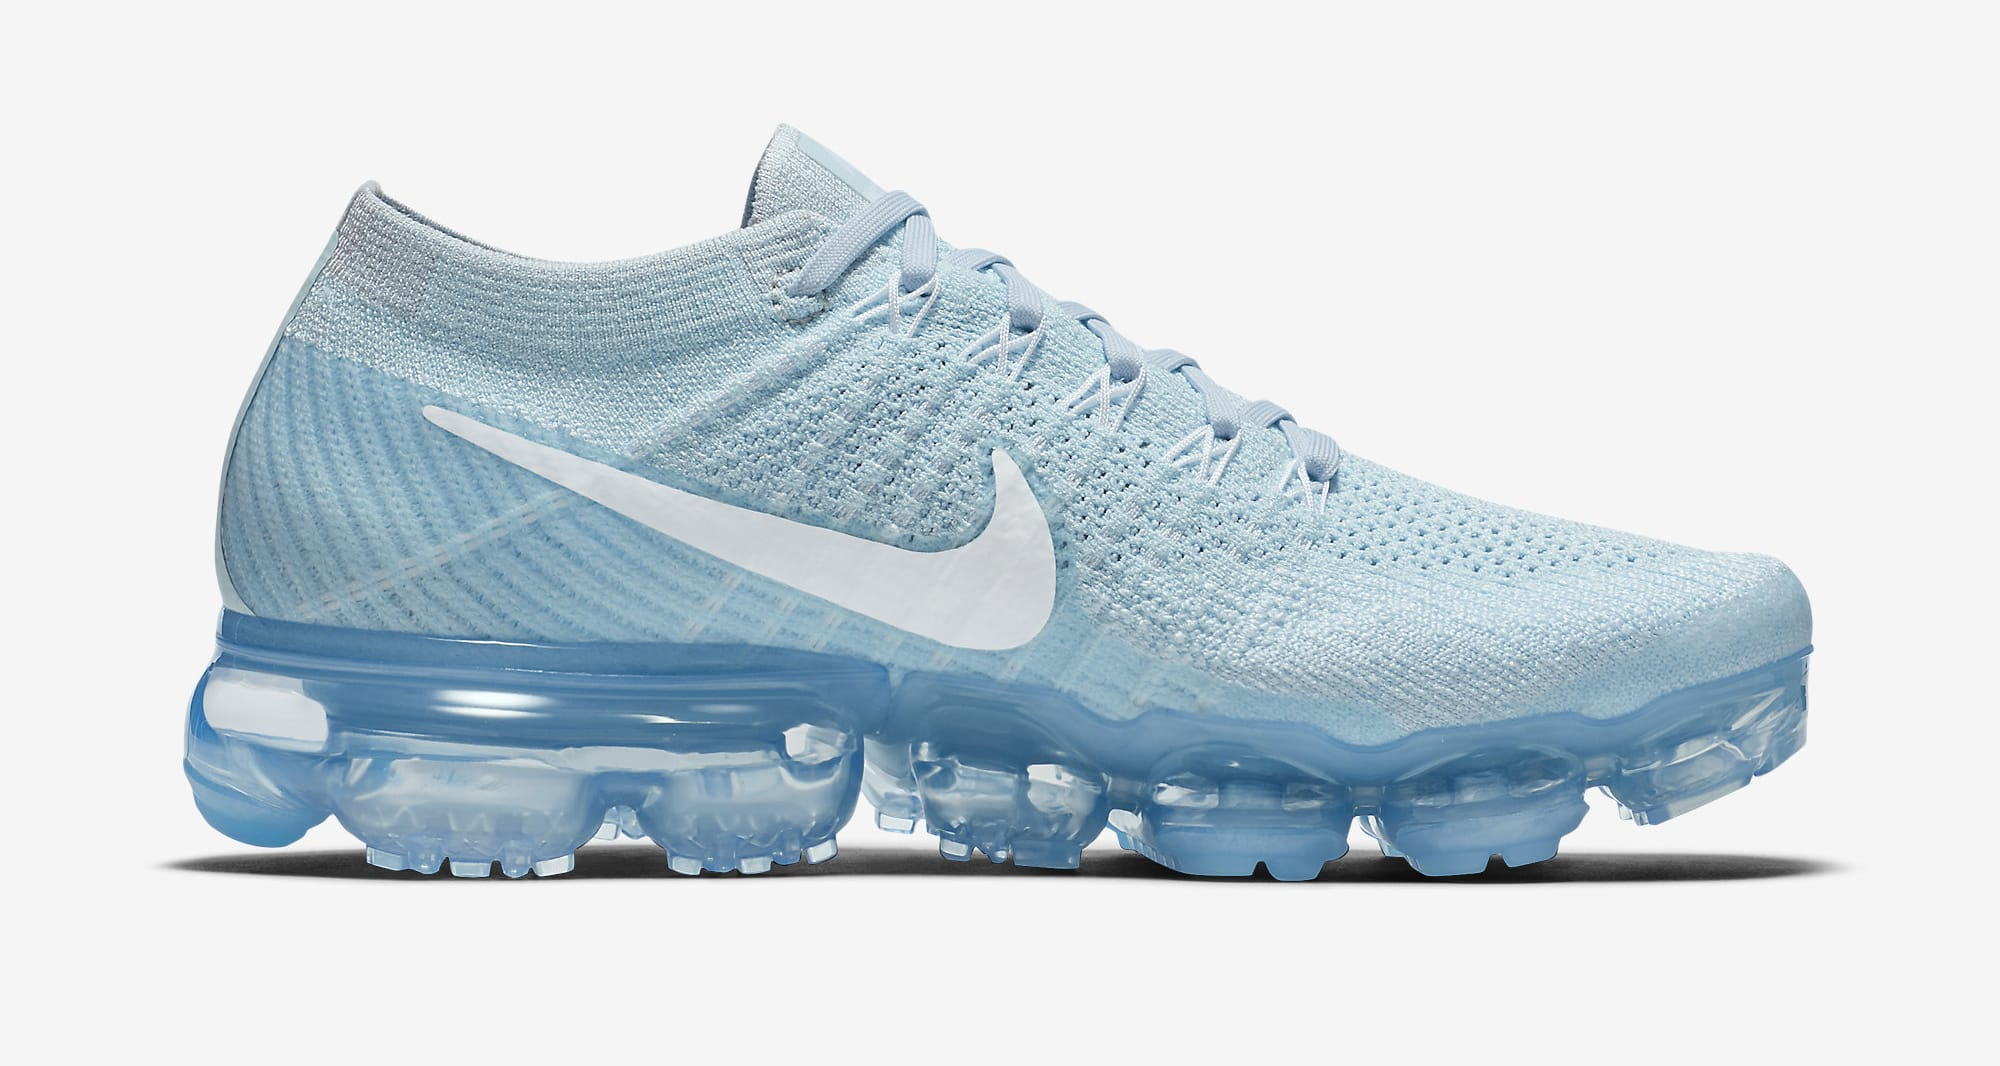 new product 9cdb7 a55cb Buy Nike Cheap Air Vapormax Flyknit Running Shoes Sale Online 2018